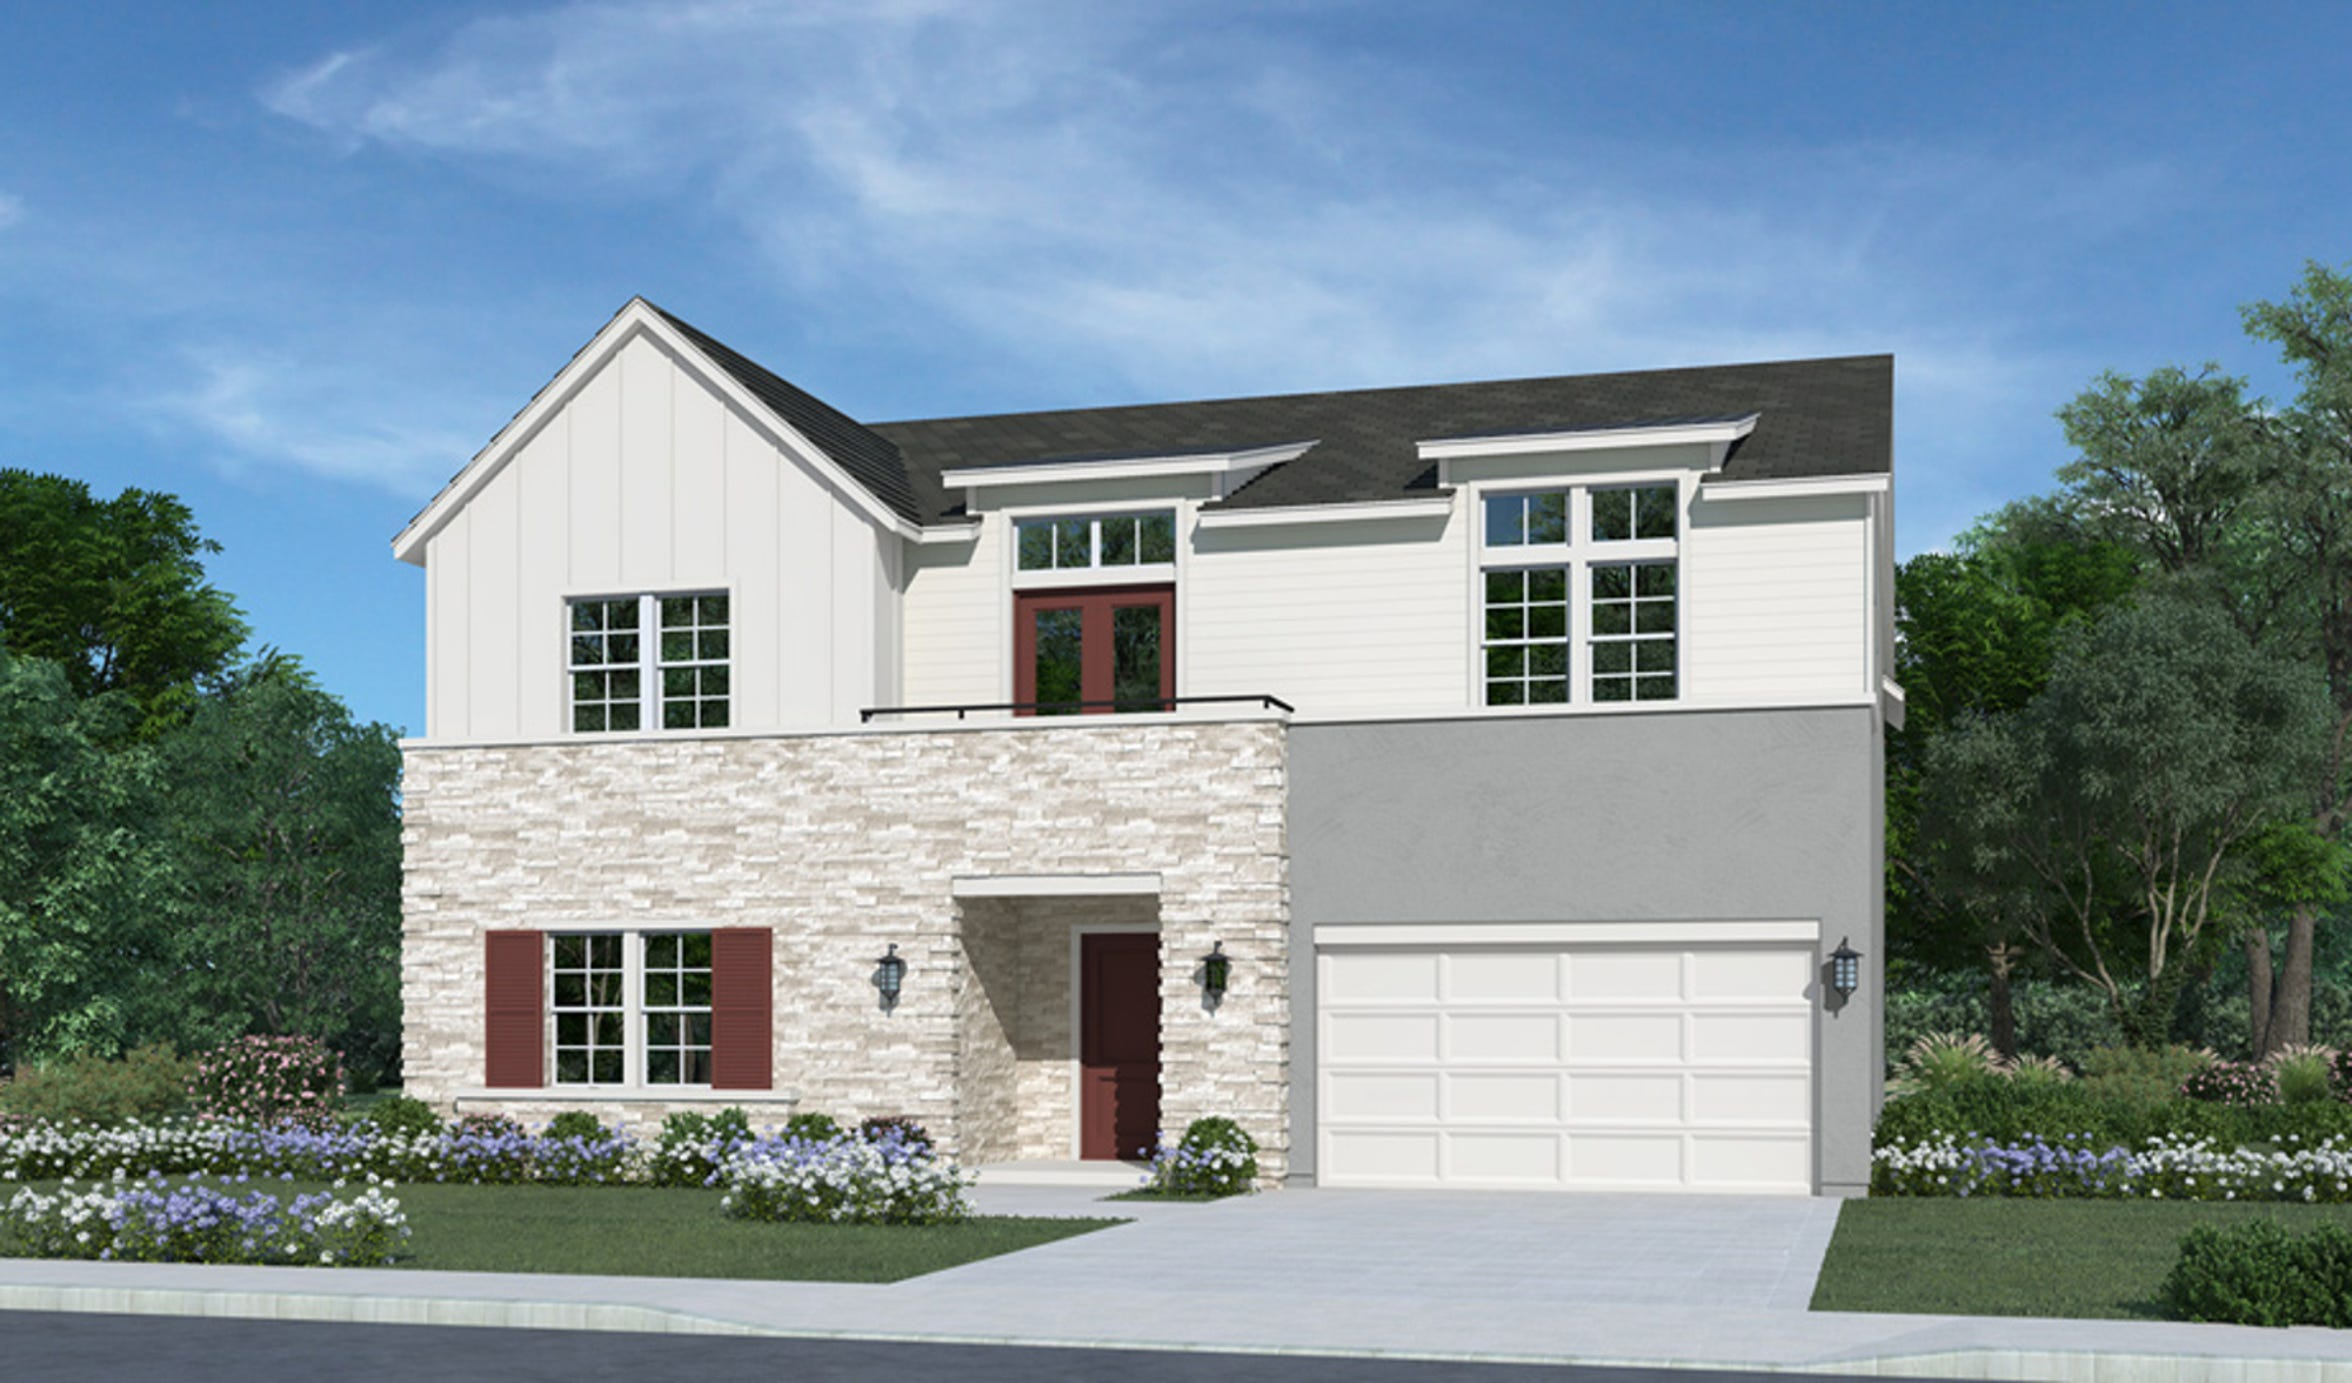 The Kinsey, one of five home designs in the new Latigo community at Rancharrah, encompasses five bedrooms and five bathrooms and begins at $929,000.